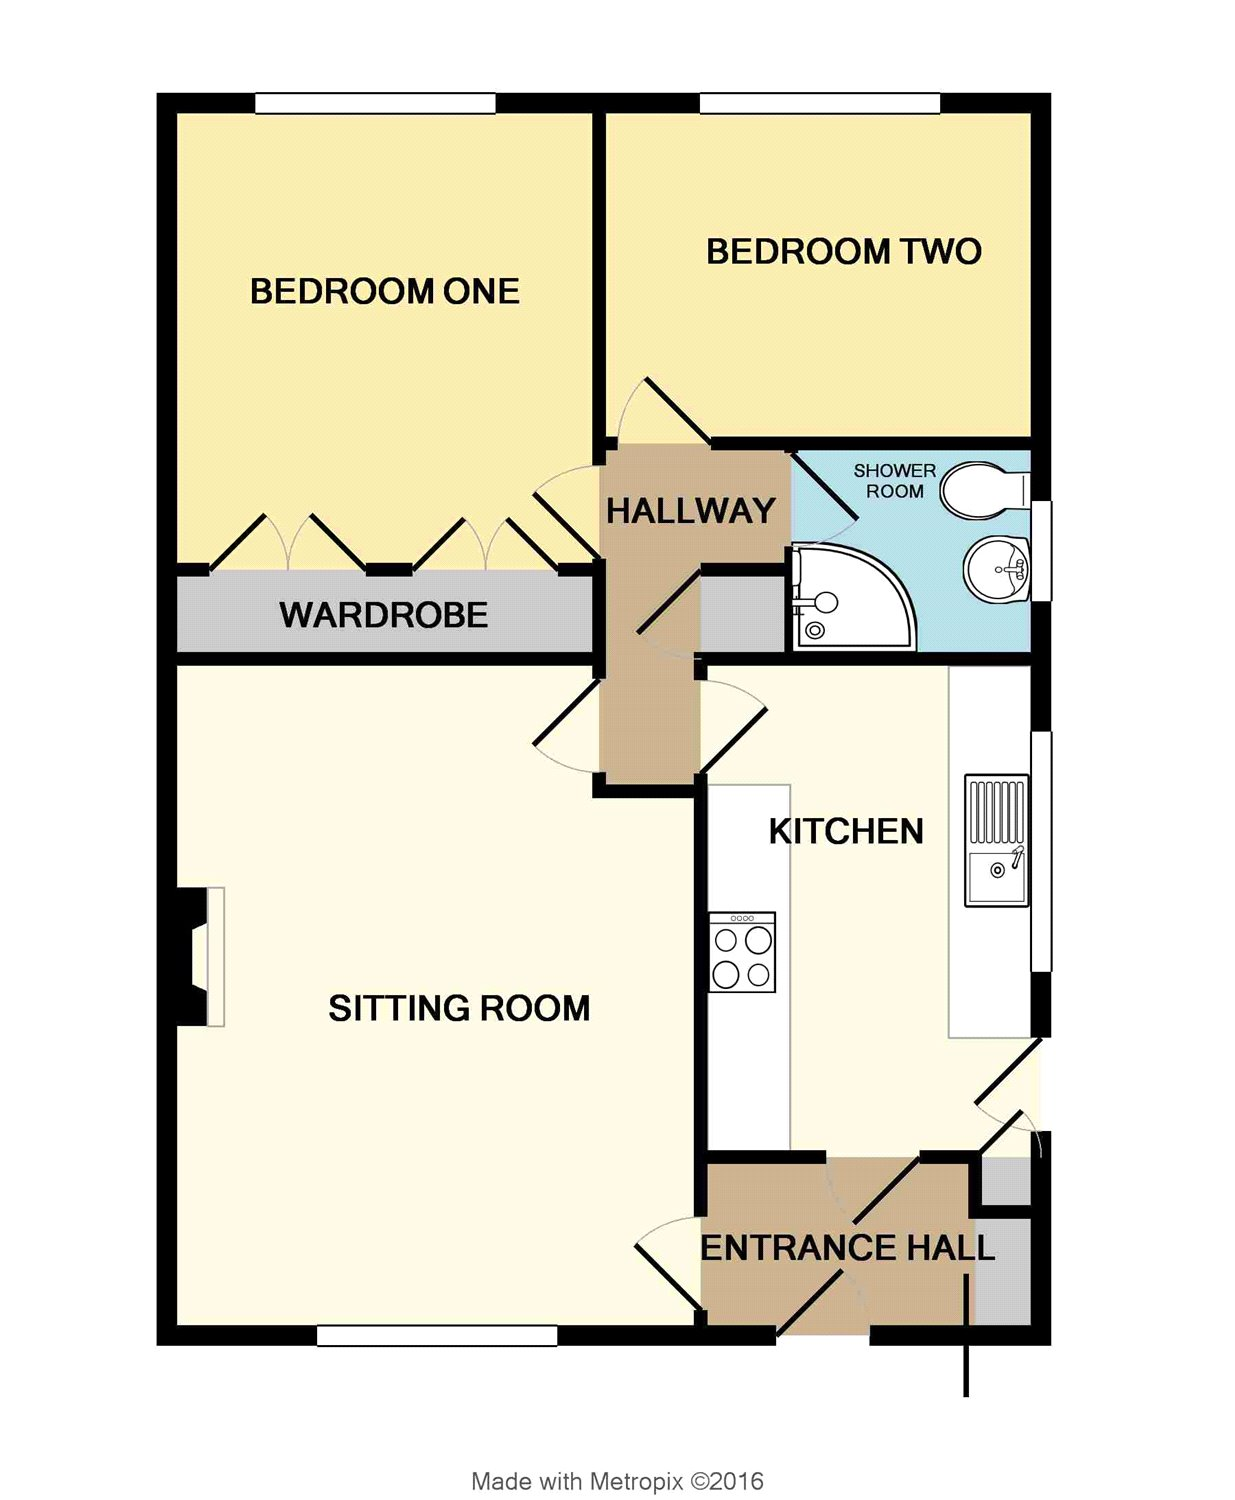 Bedroom detached house for sale in flushing falmouth cornwall - Holman Avenue Camborne Cornwall Tr14 2 Bedroom Semi